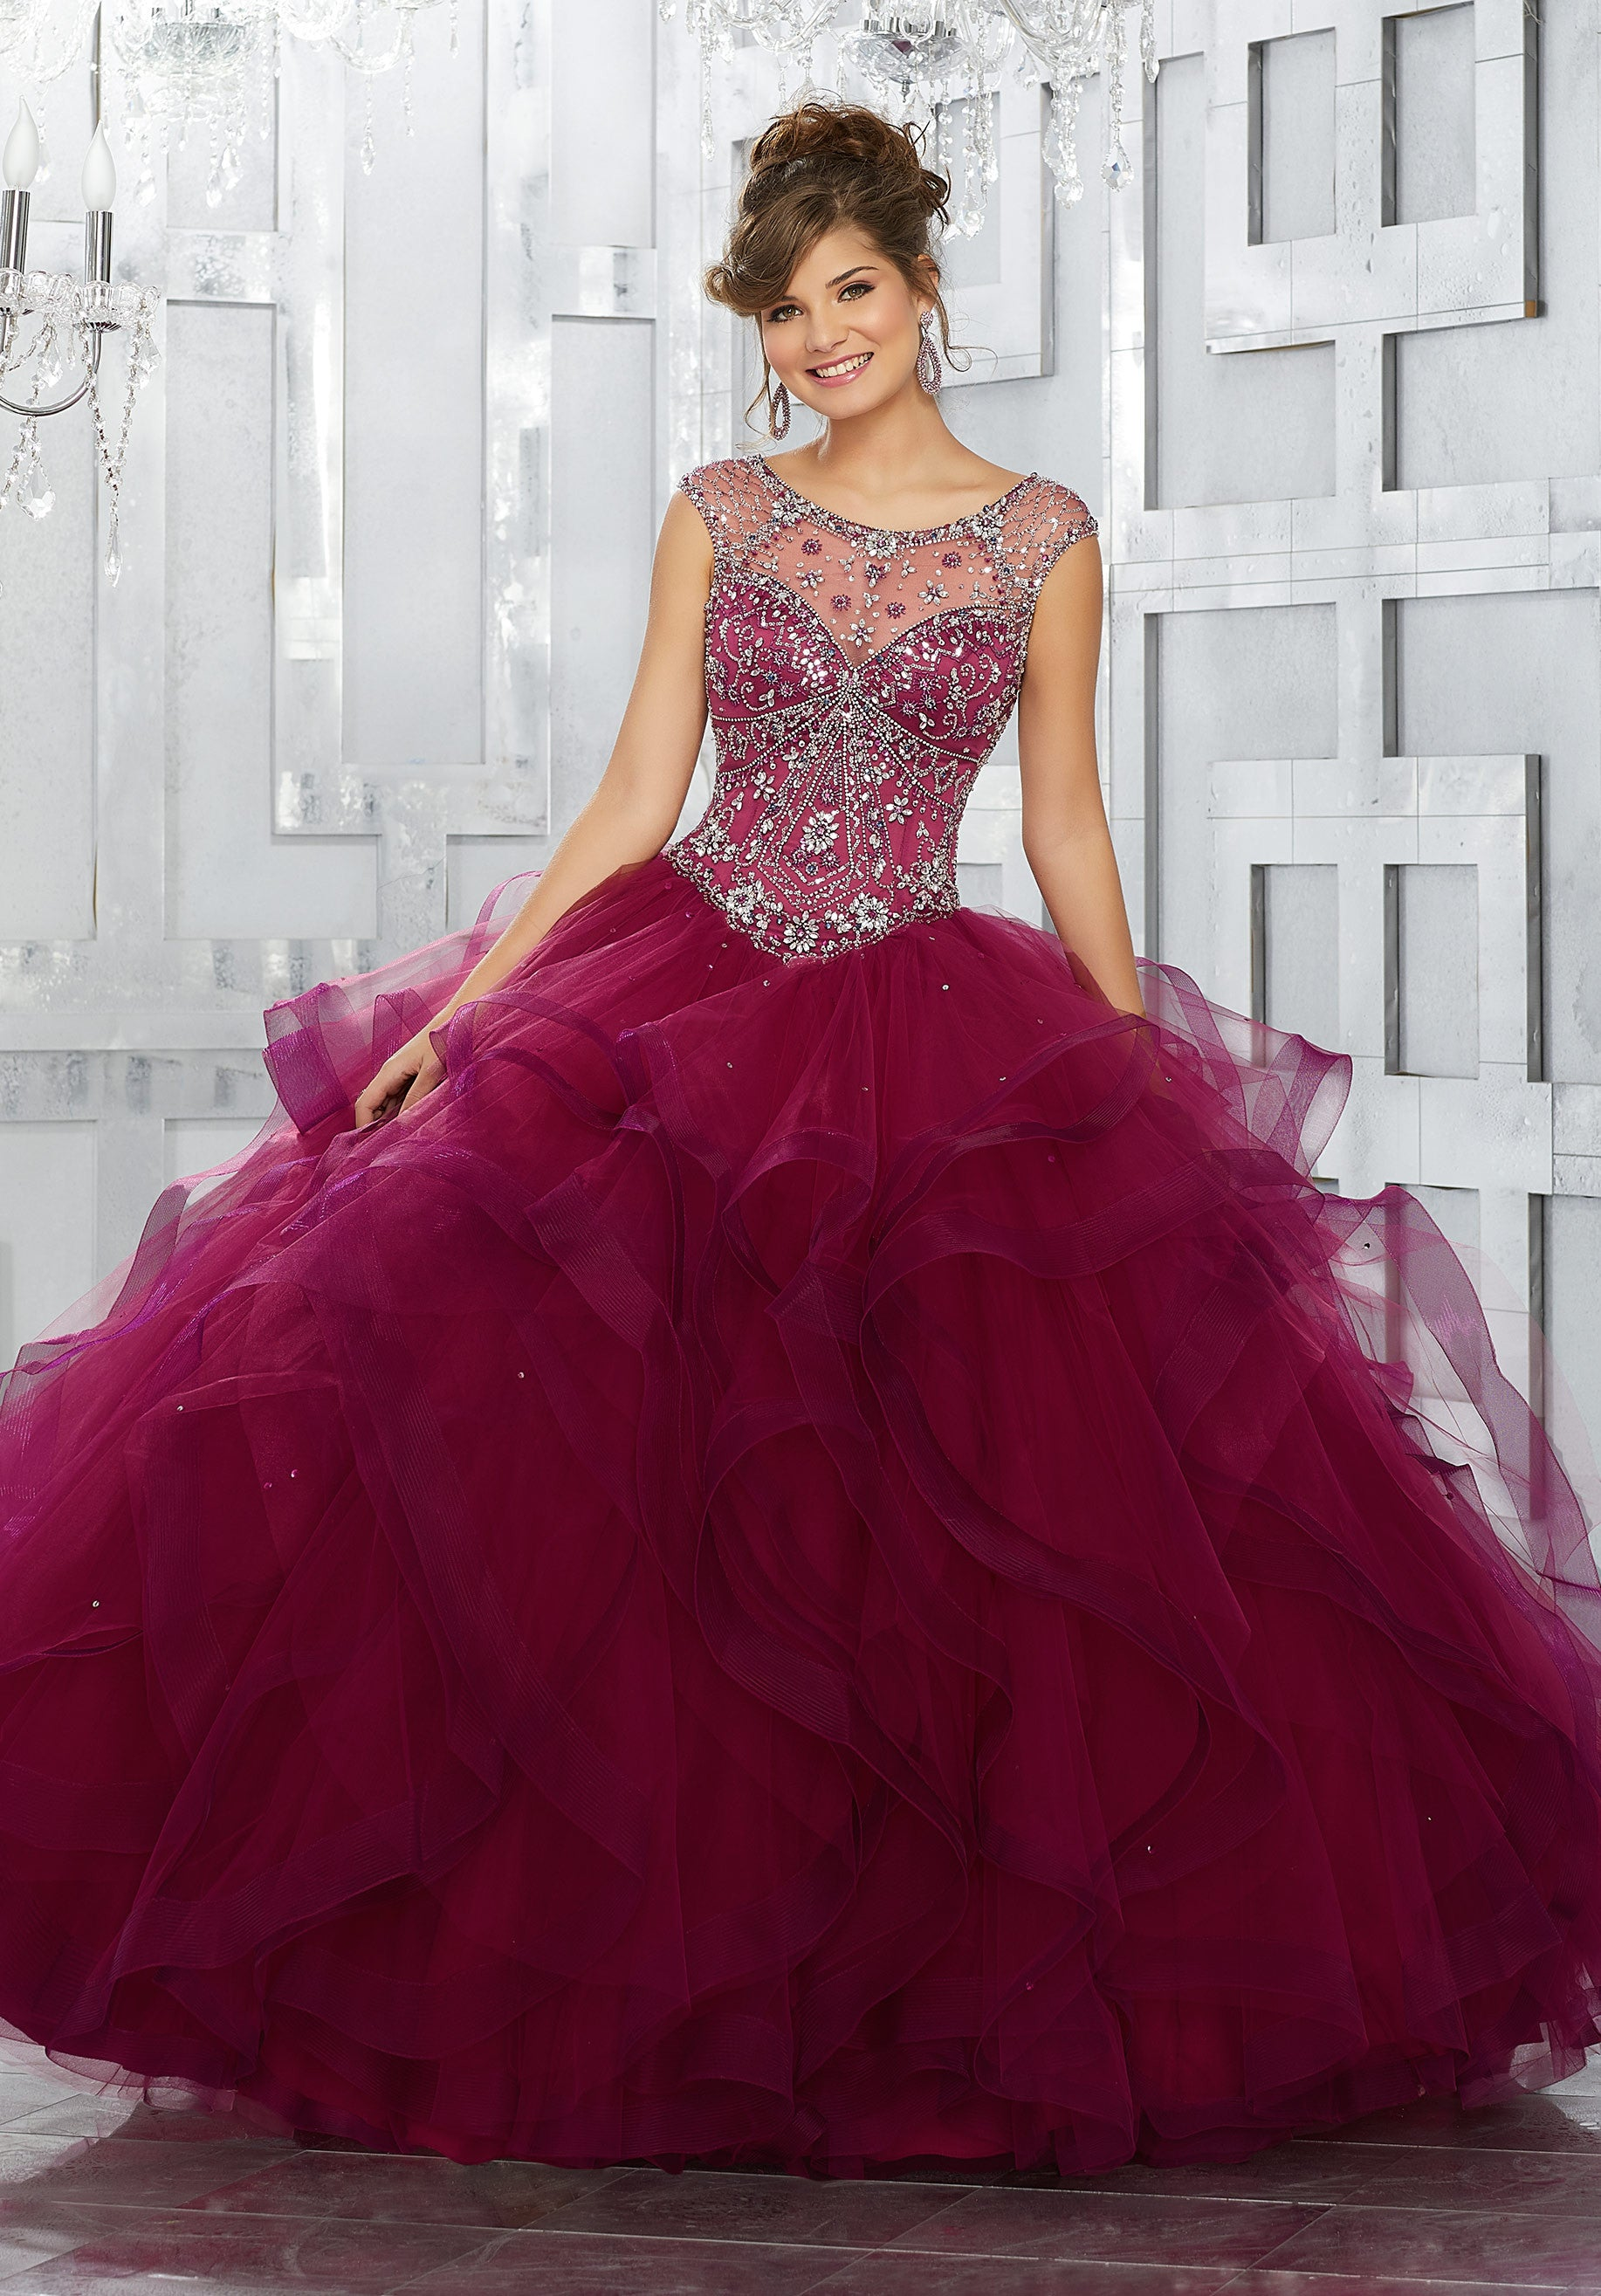 Jeweled Net Bodice on a Flounced Tulle Ball Gown Skirt – Rina\'s ...